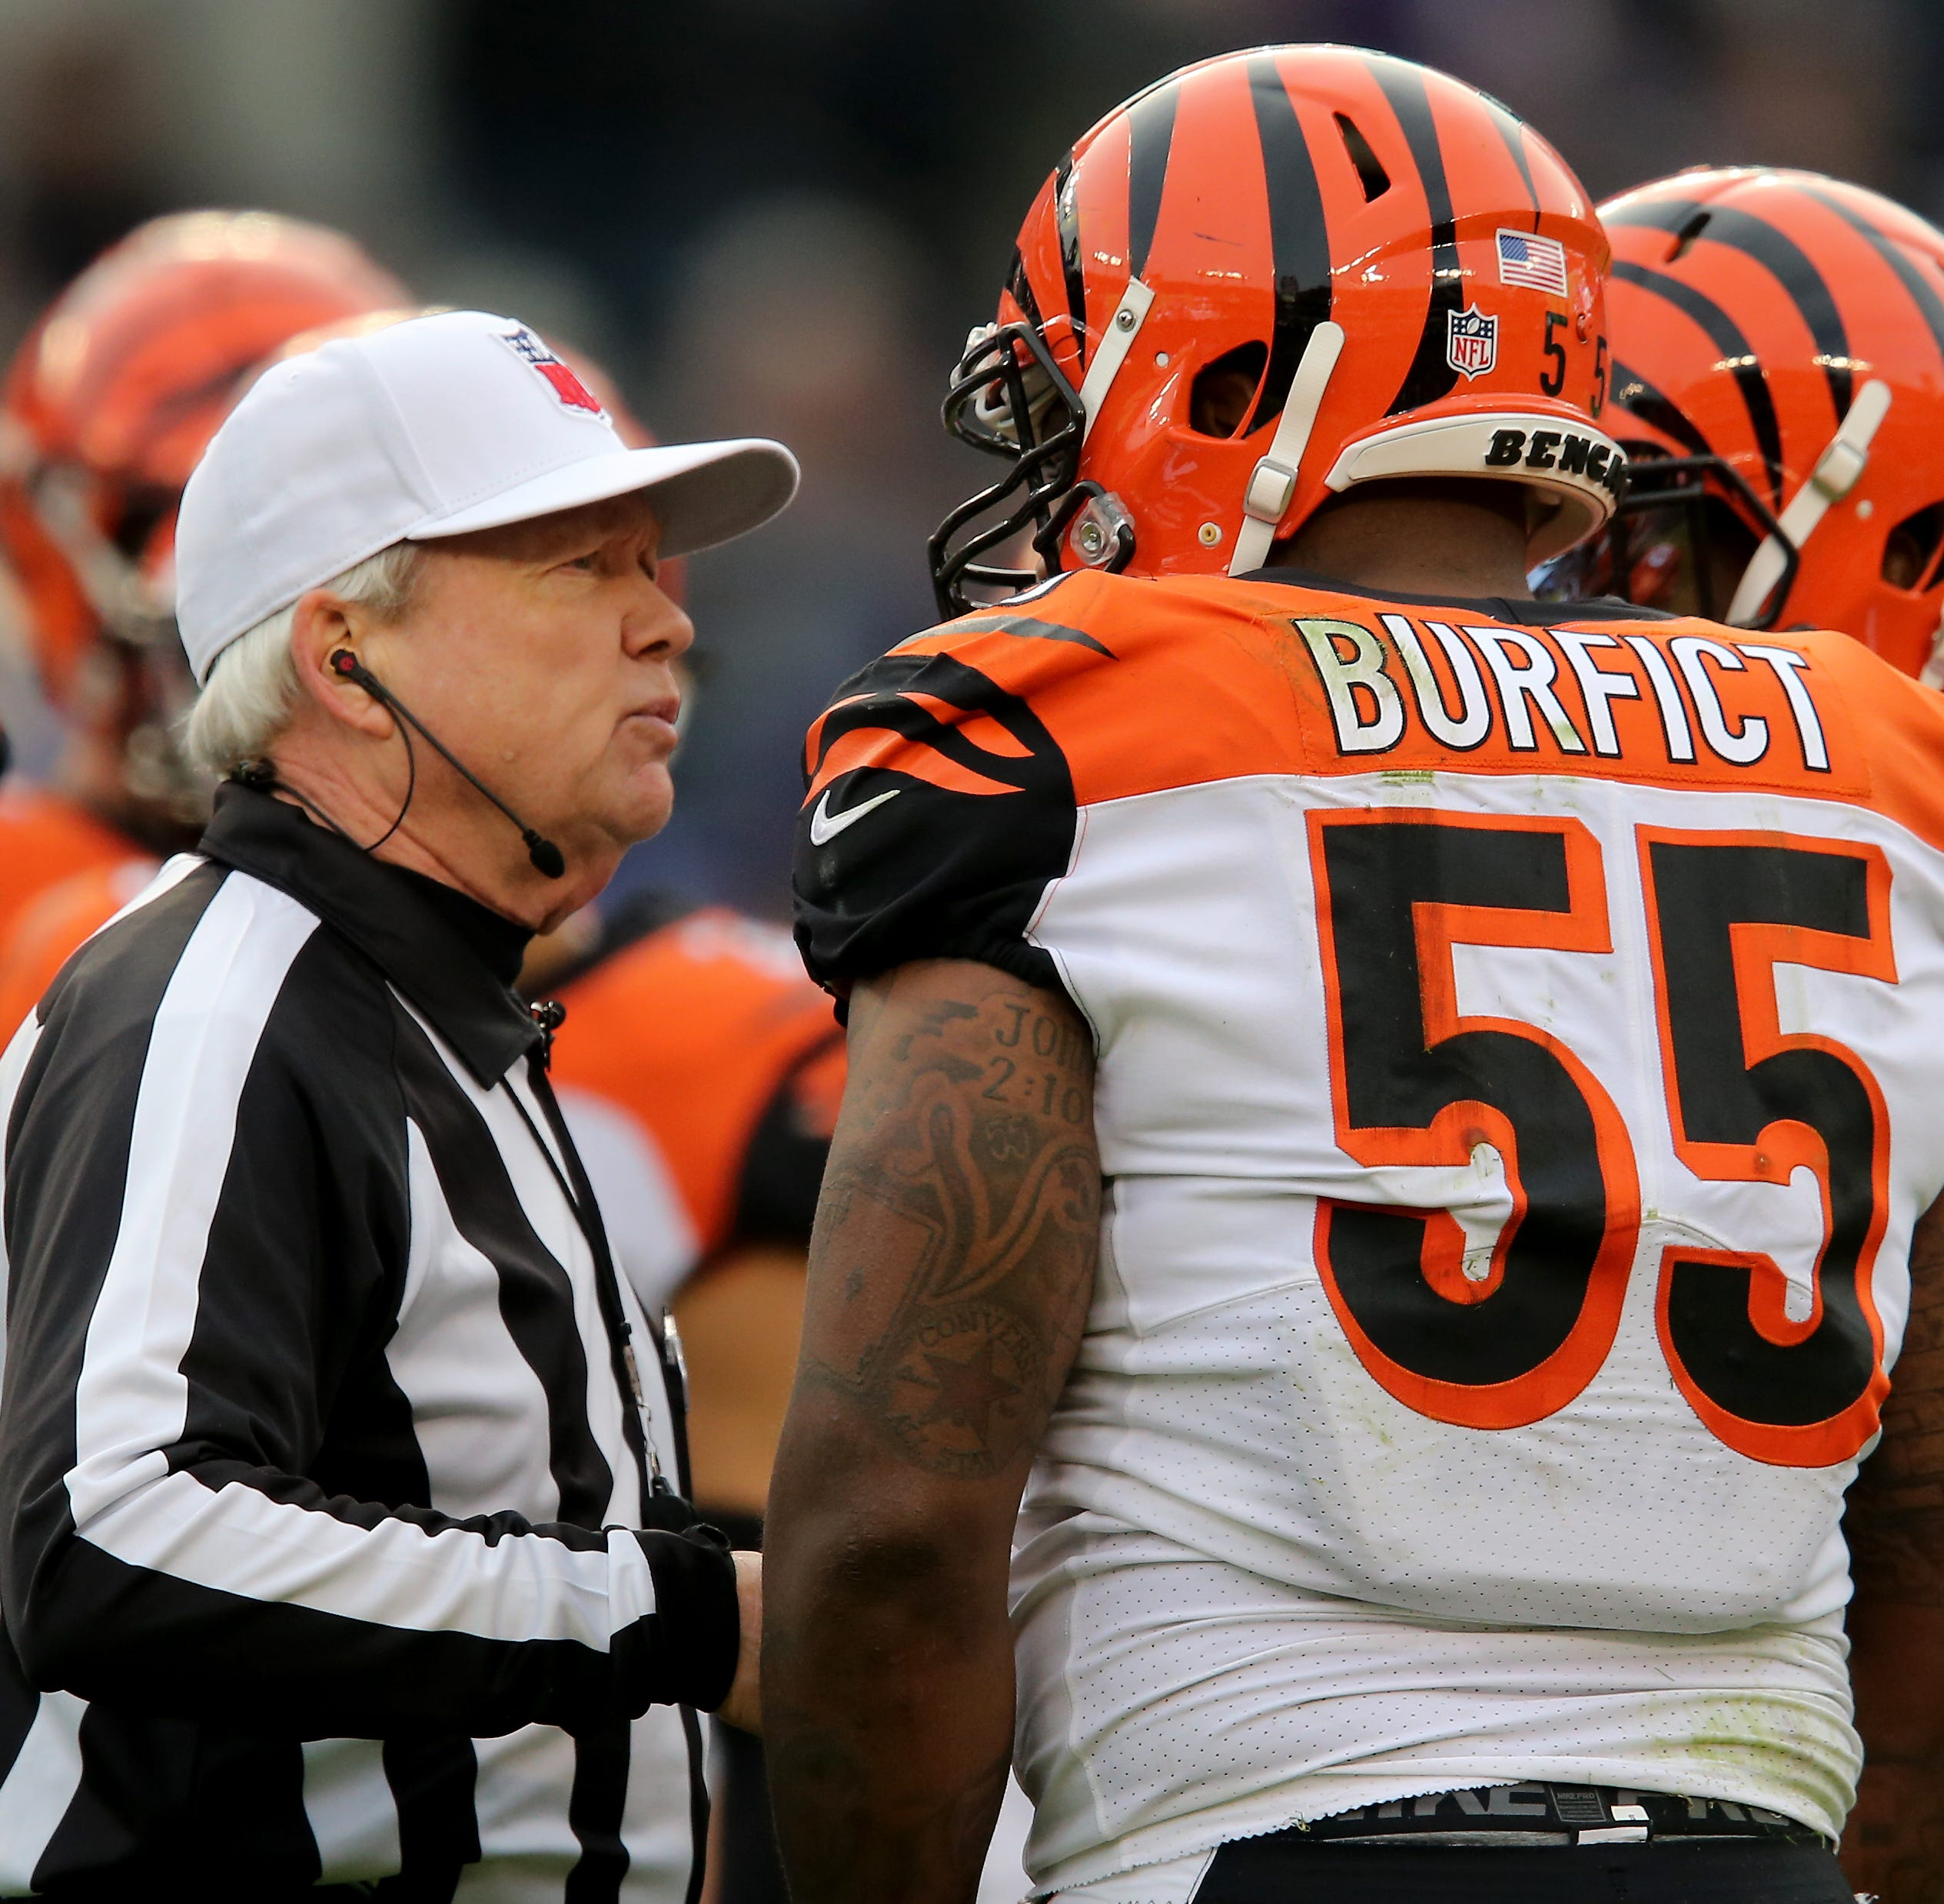 Watch: Baltimore Ravens' Marshal Yanda spits at Bengals' Vontaze Burfict